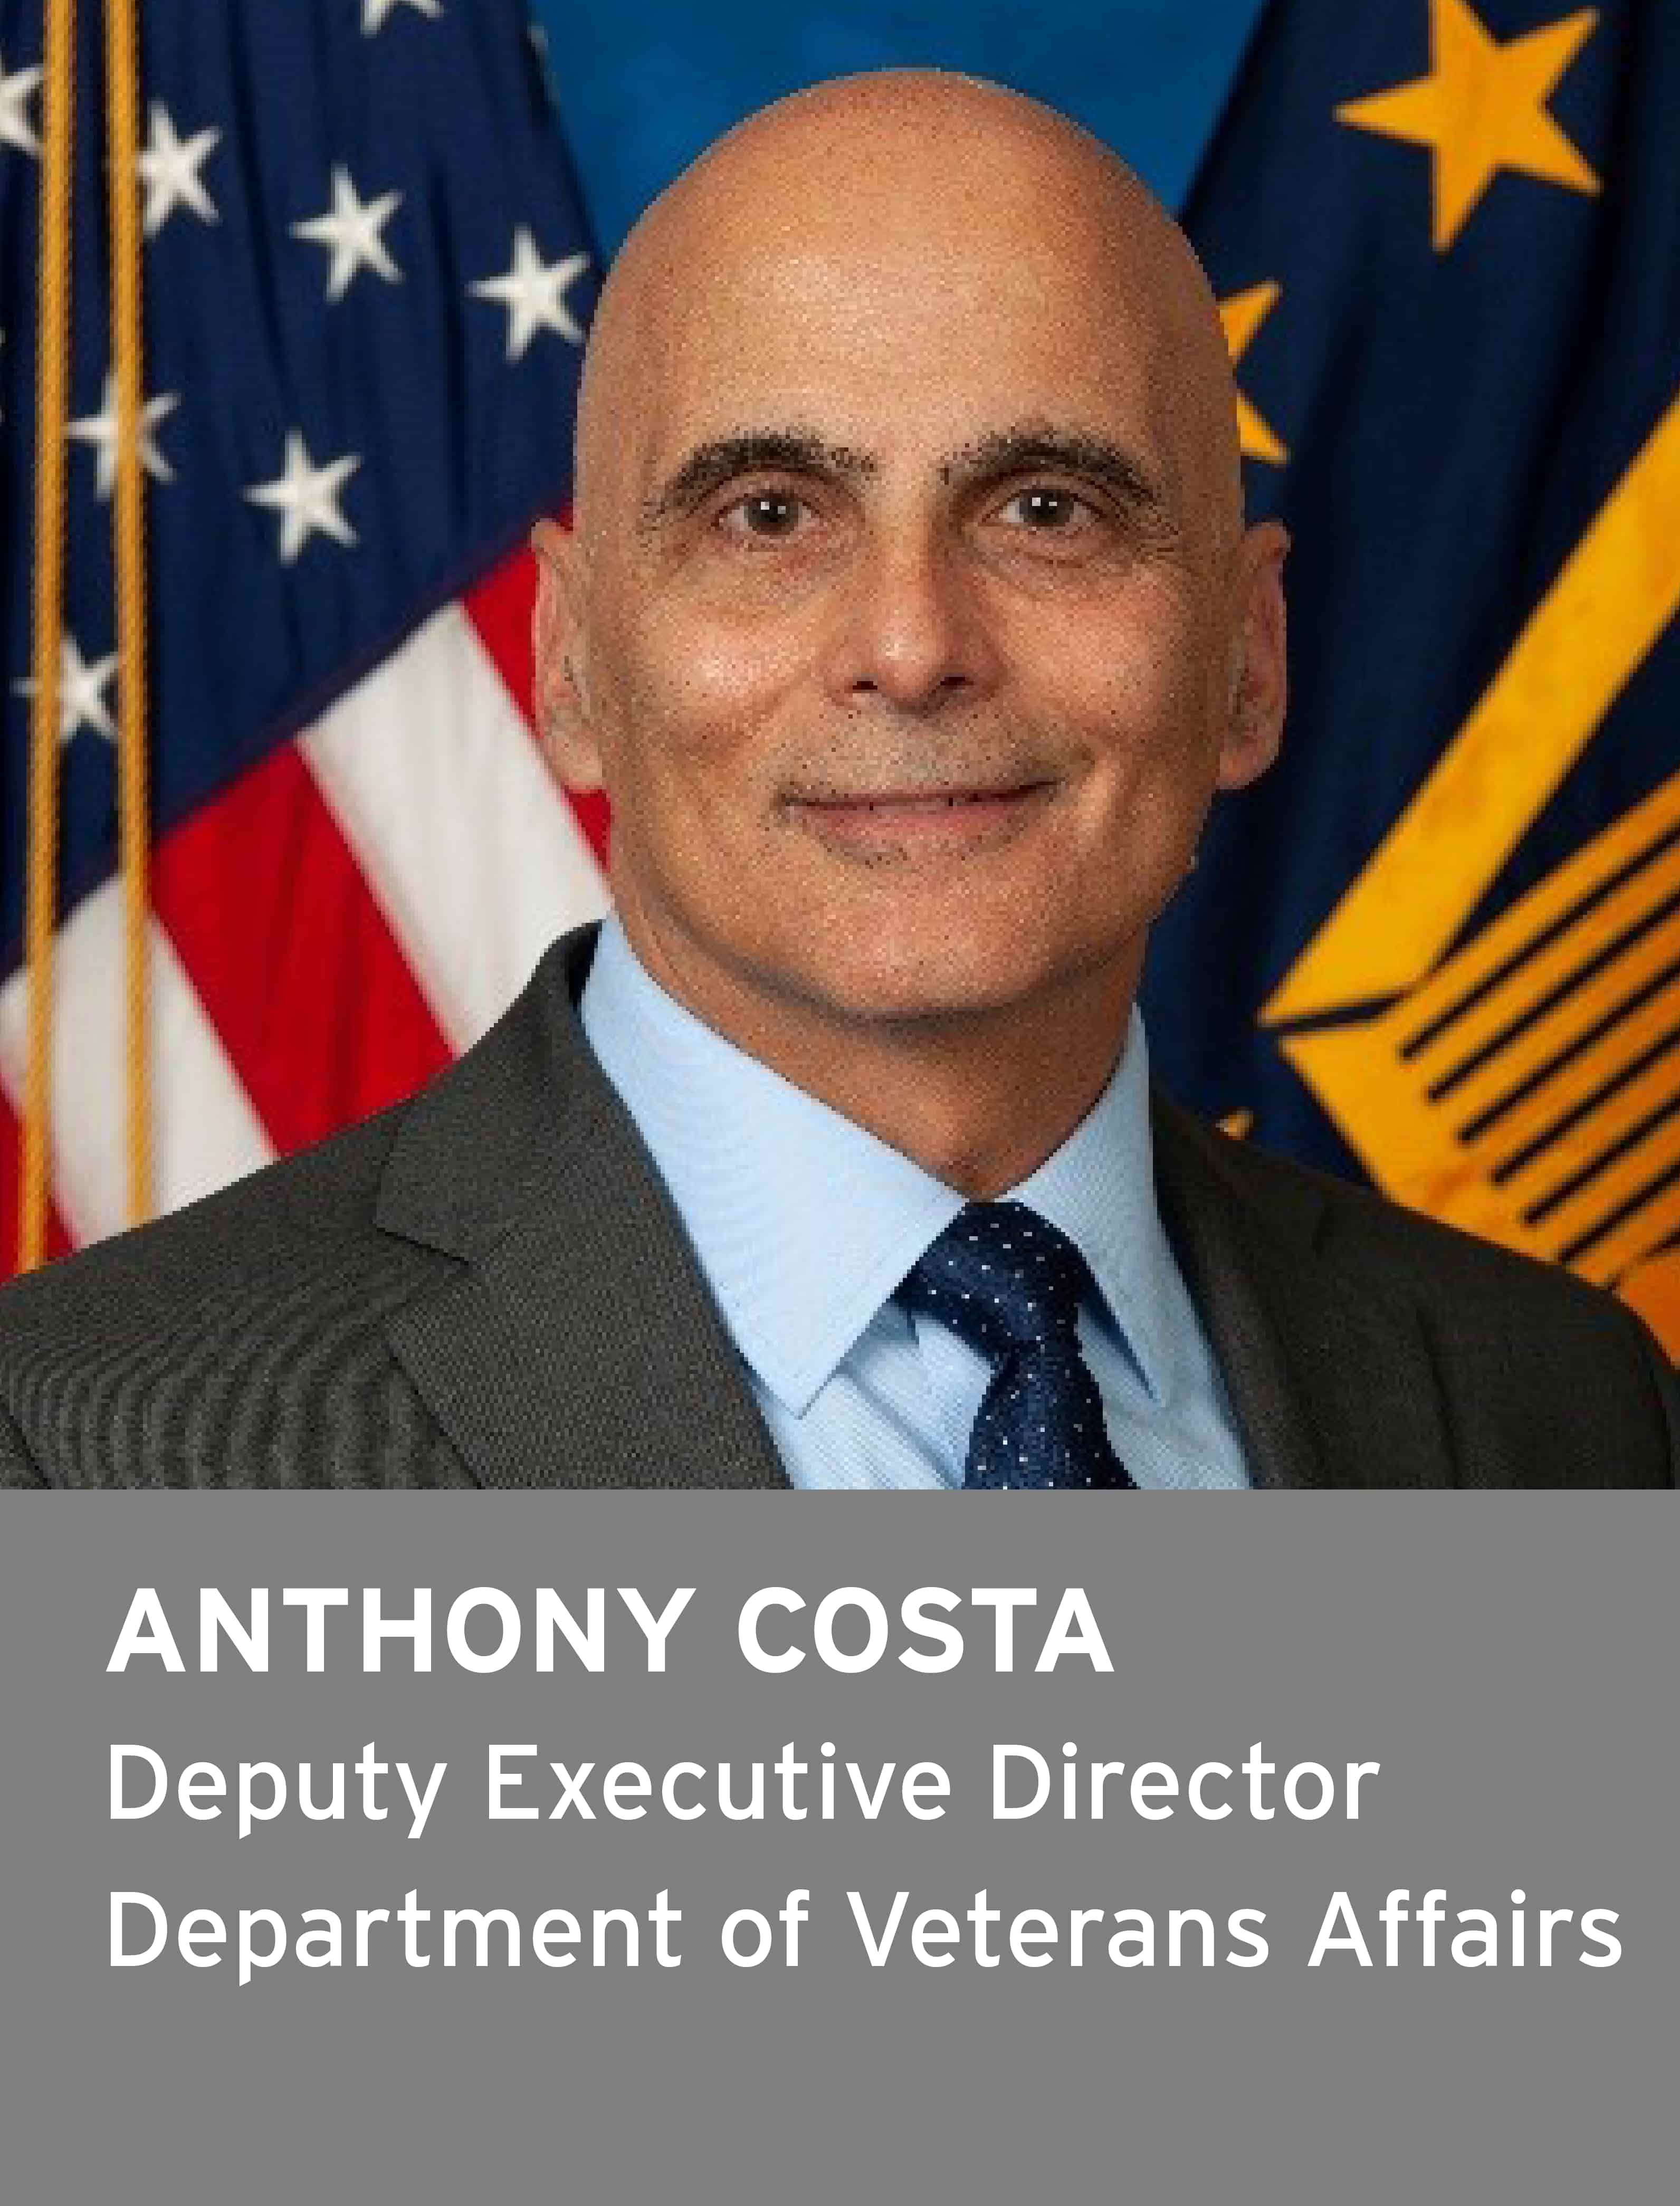 Anthony Costa, Deputy Executive Director, Department of Veterans Affairs